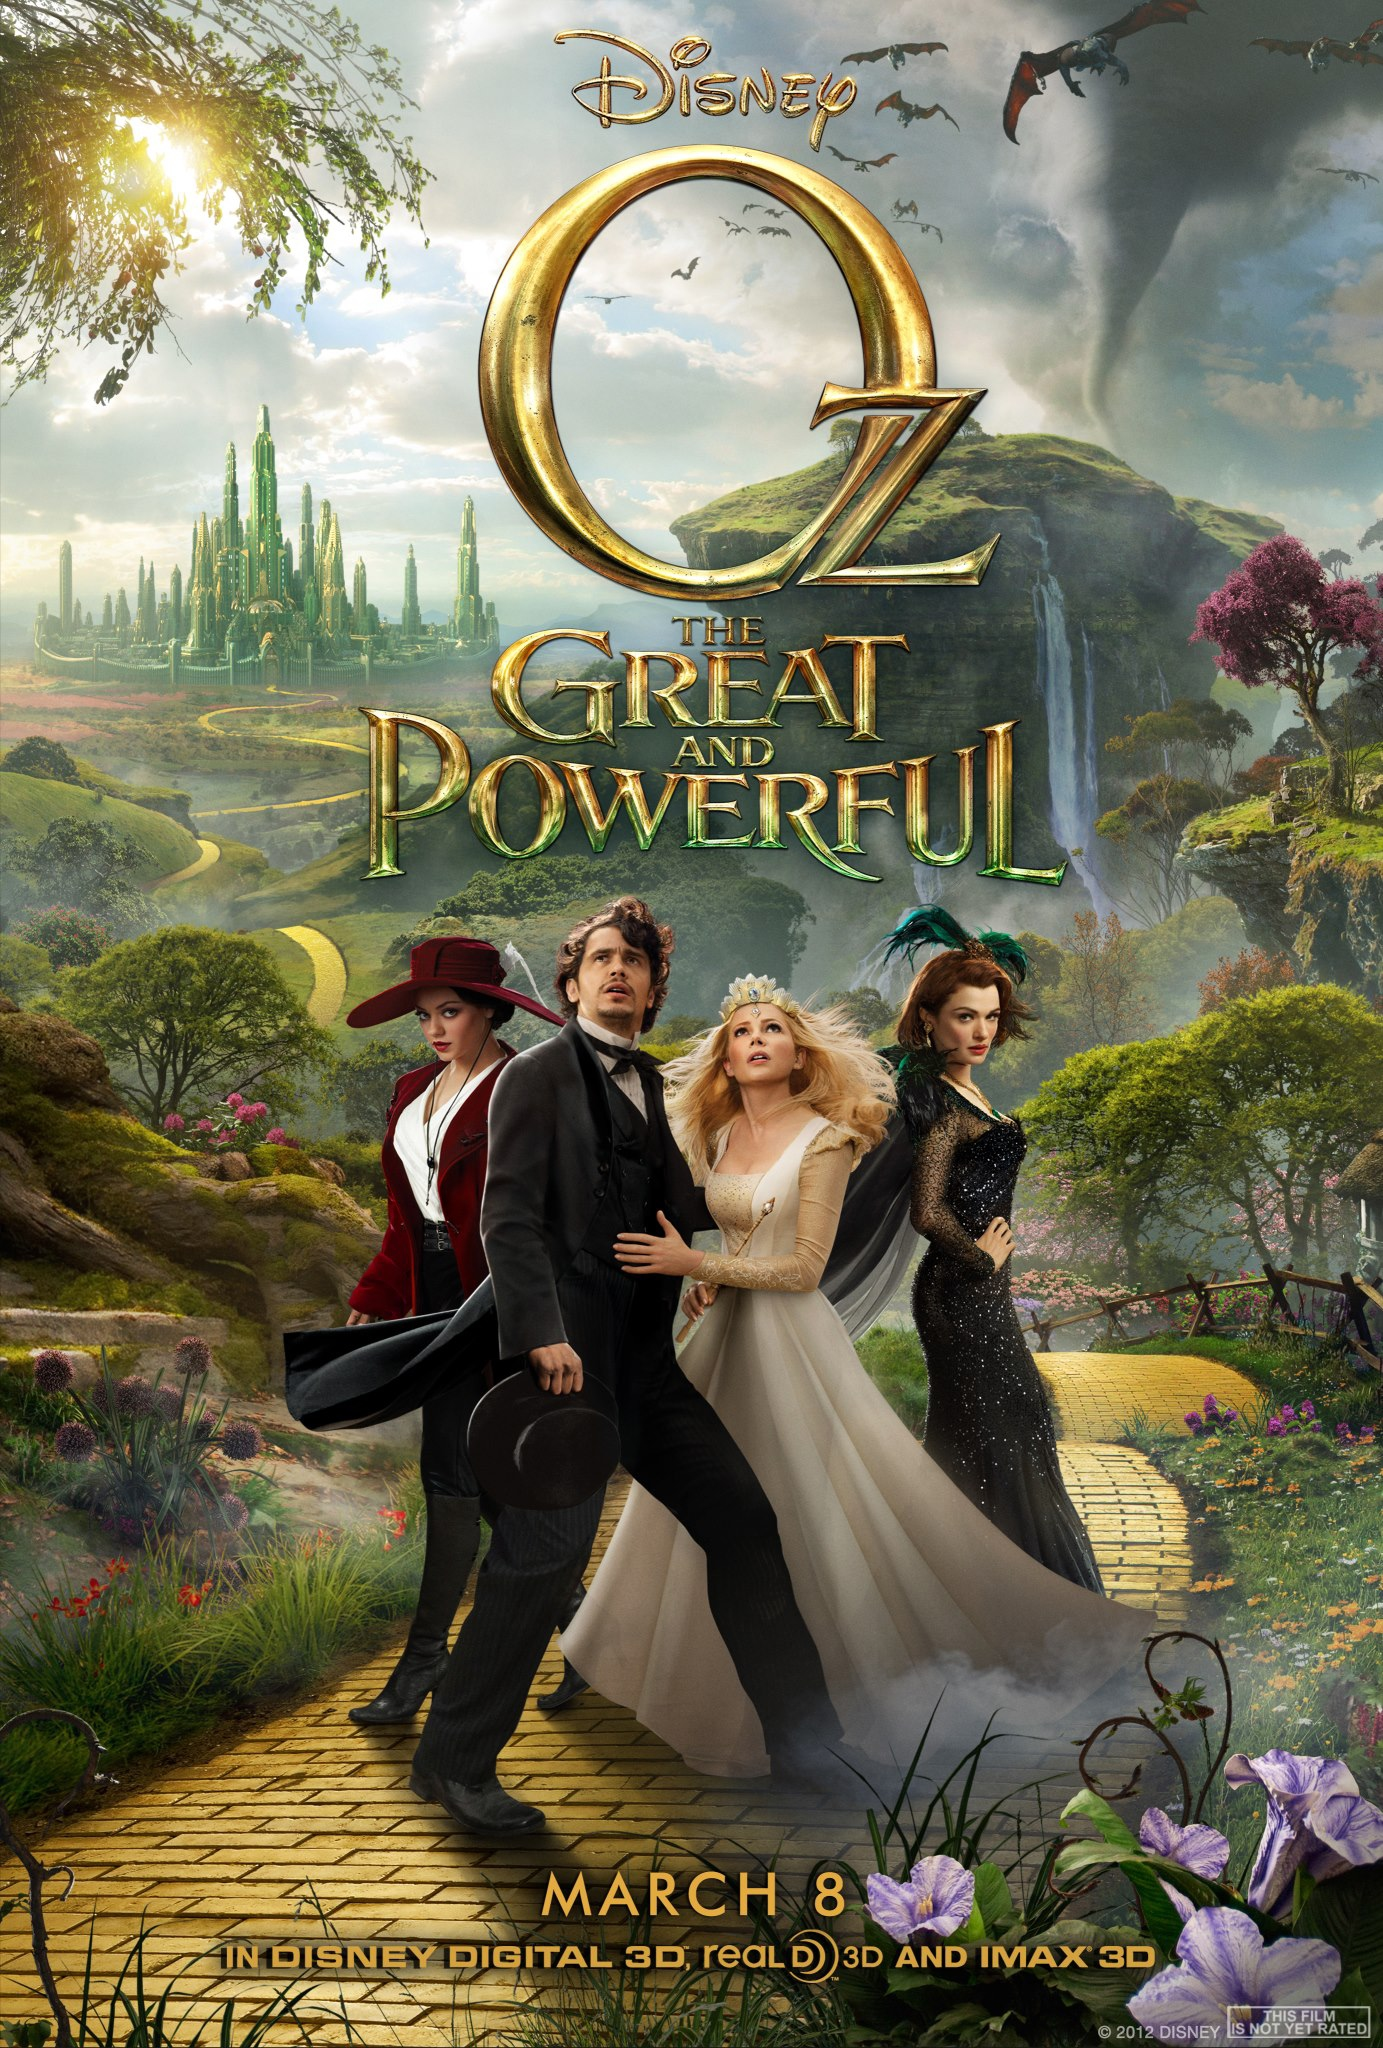 Oz the Great and Powerful - Movie Poster #3 (Original)